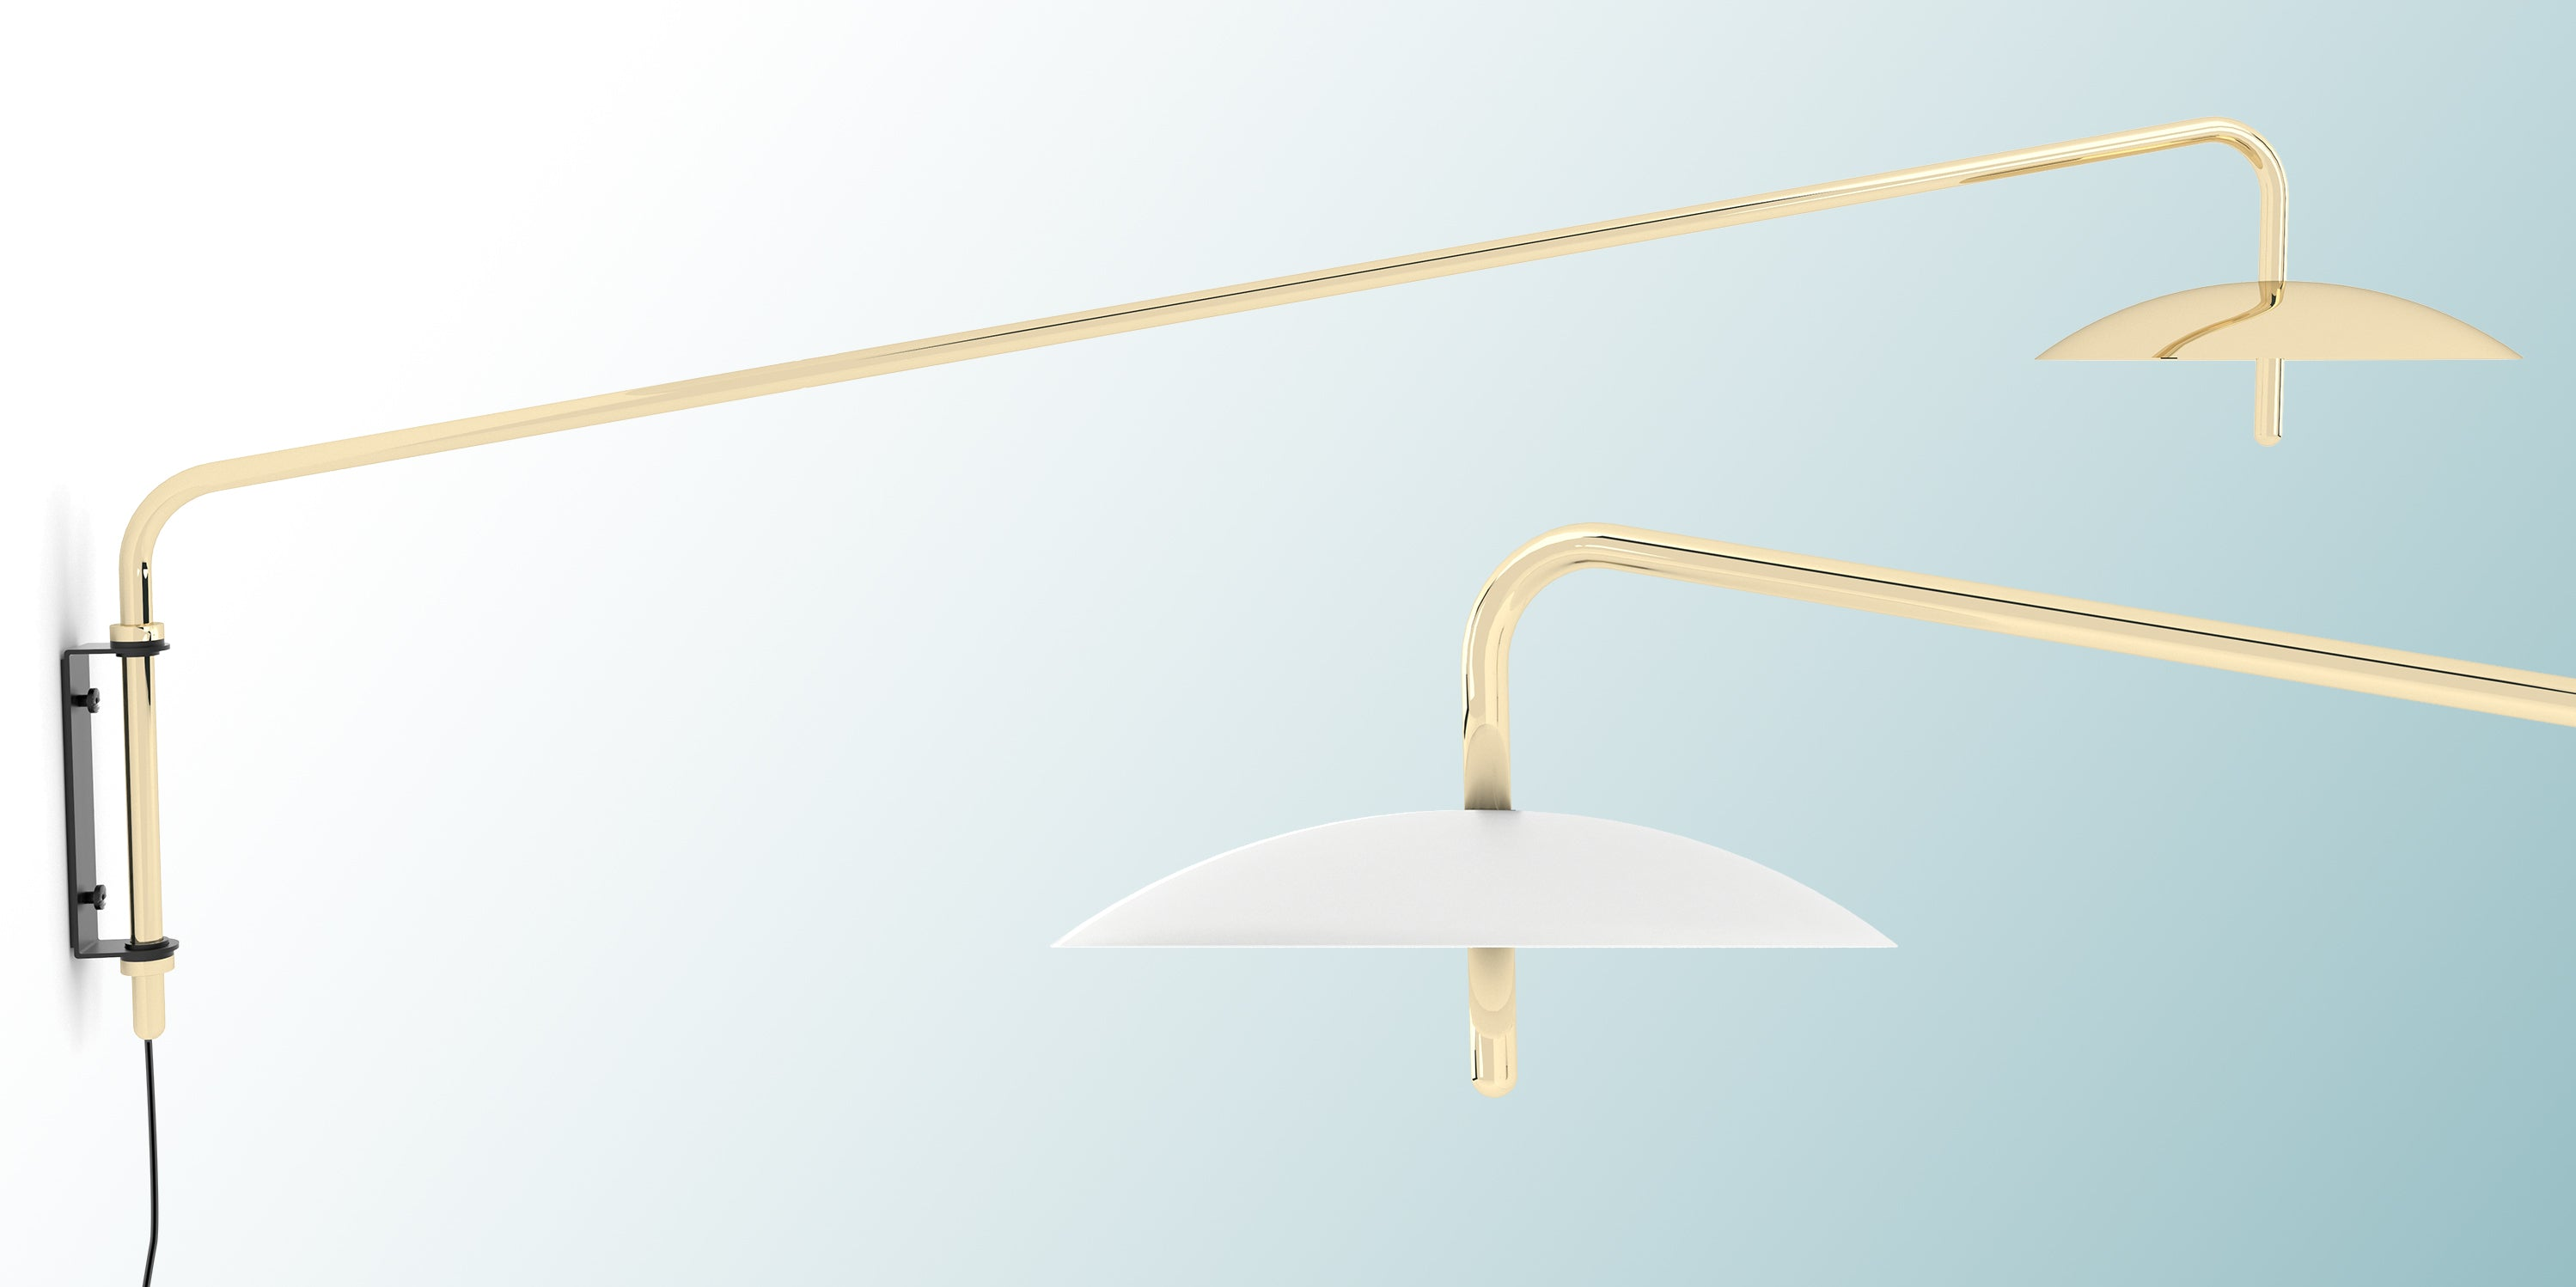 Signal Arm Sconce by Shaun Kasperbauer for Souda